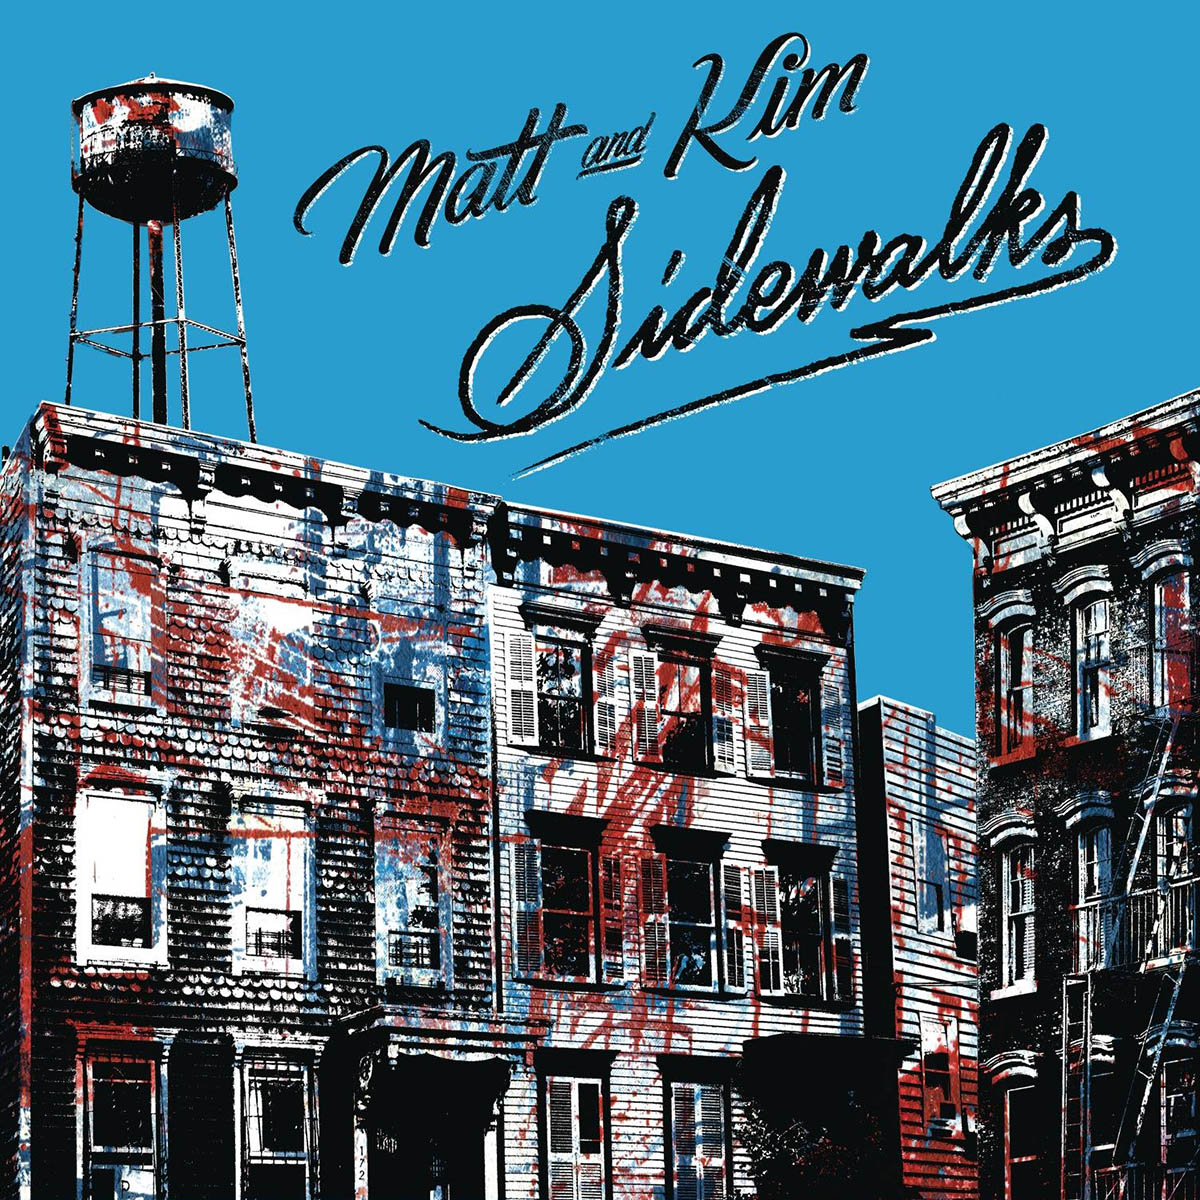 Matt and Kim, Sidewalks